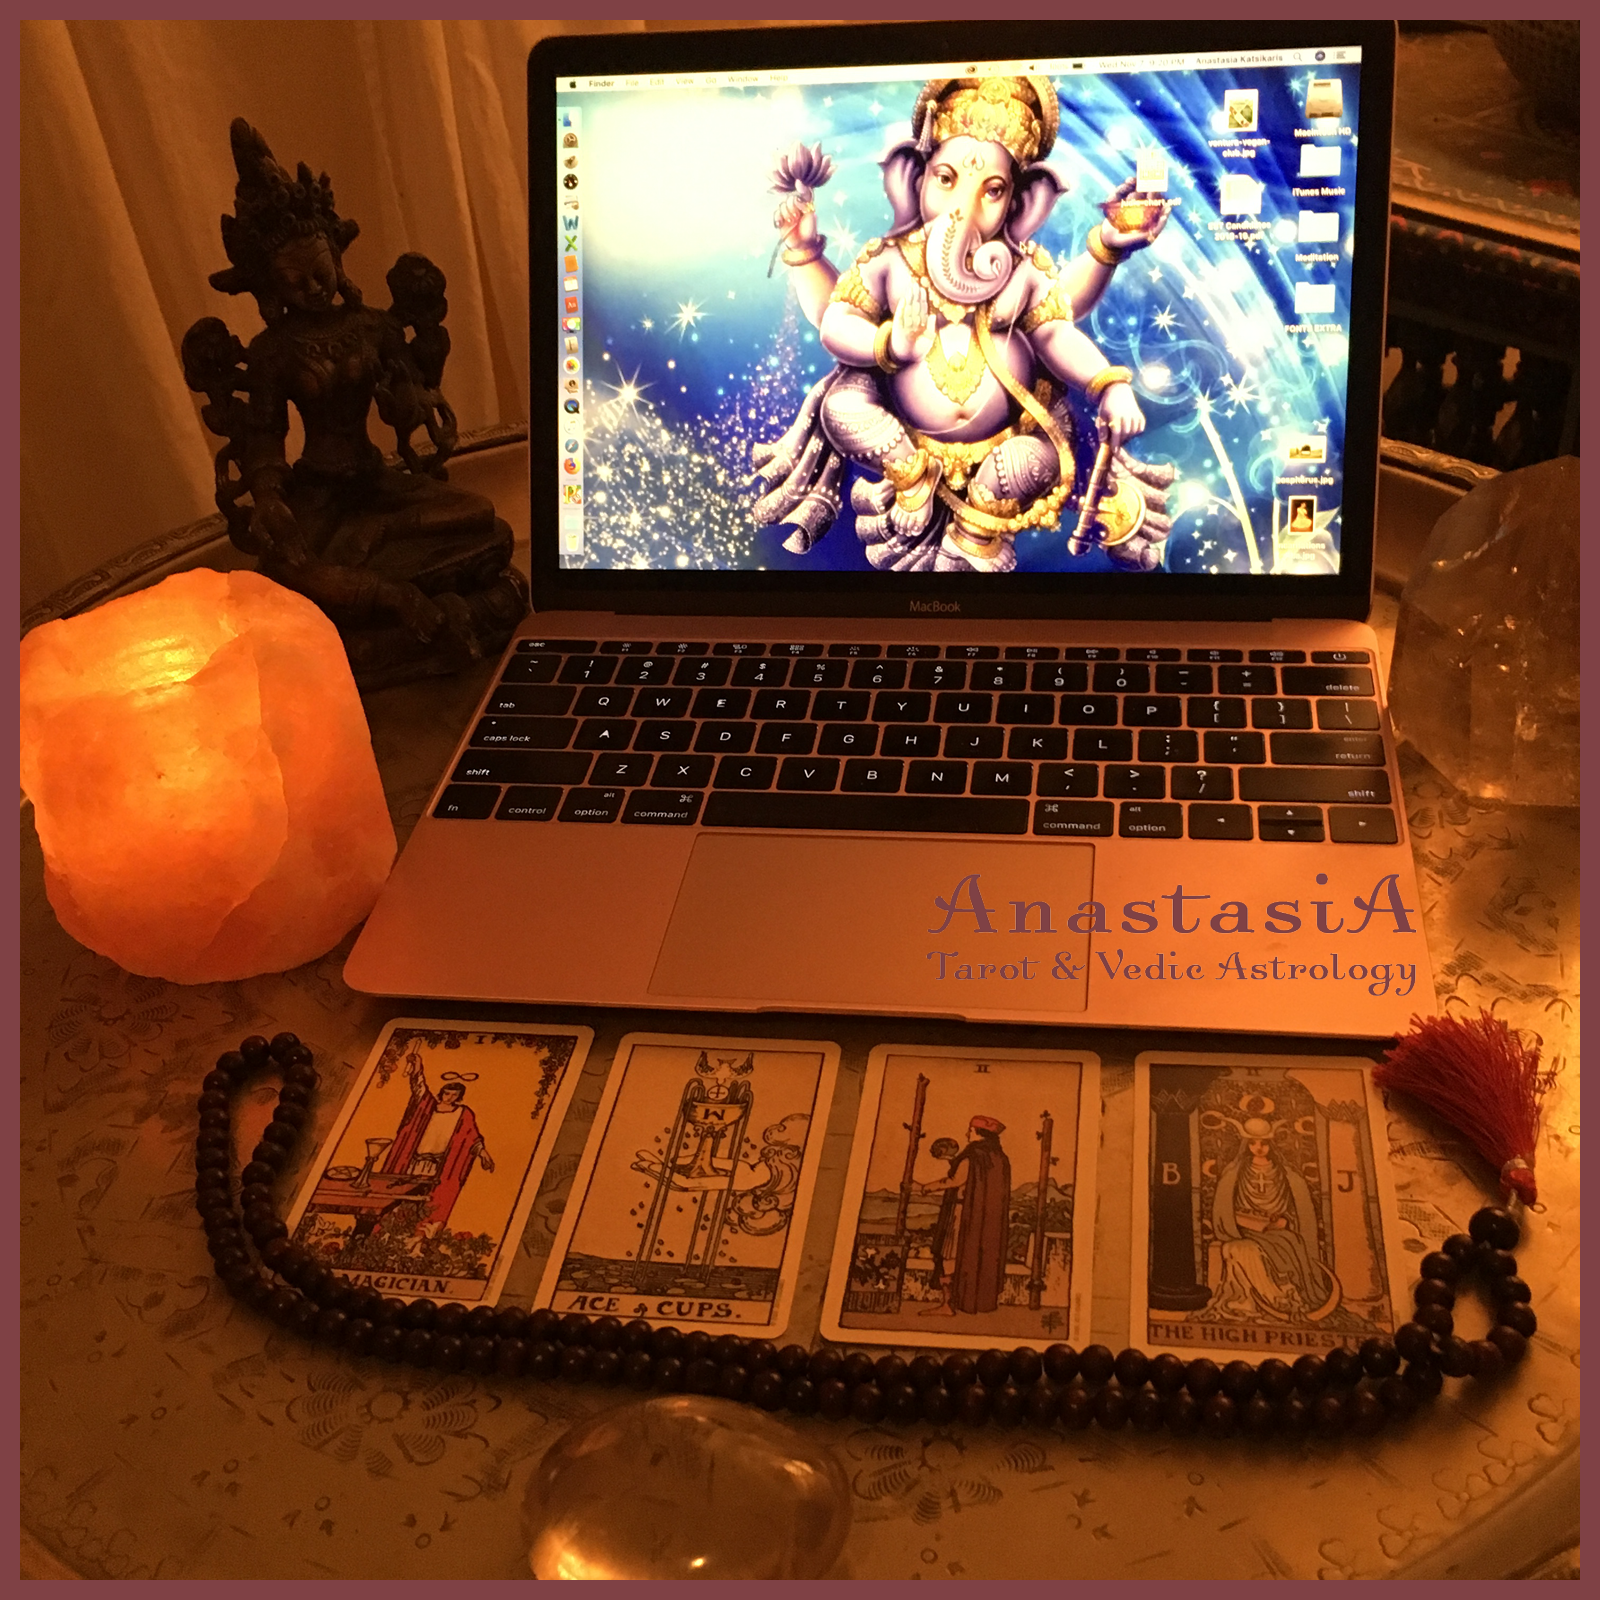 e-mail or skype tarot reading